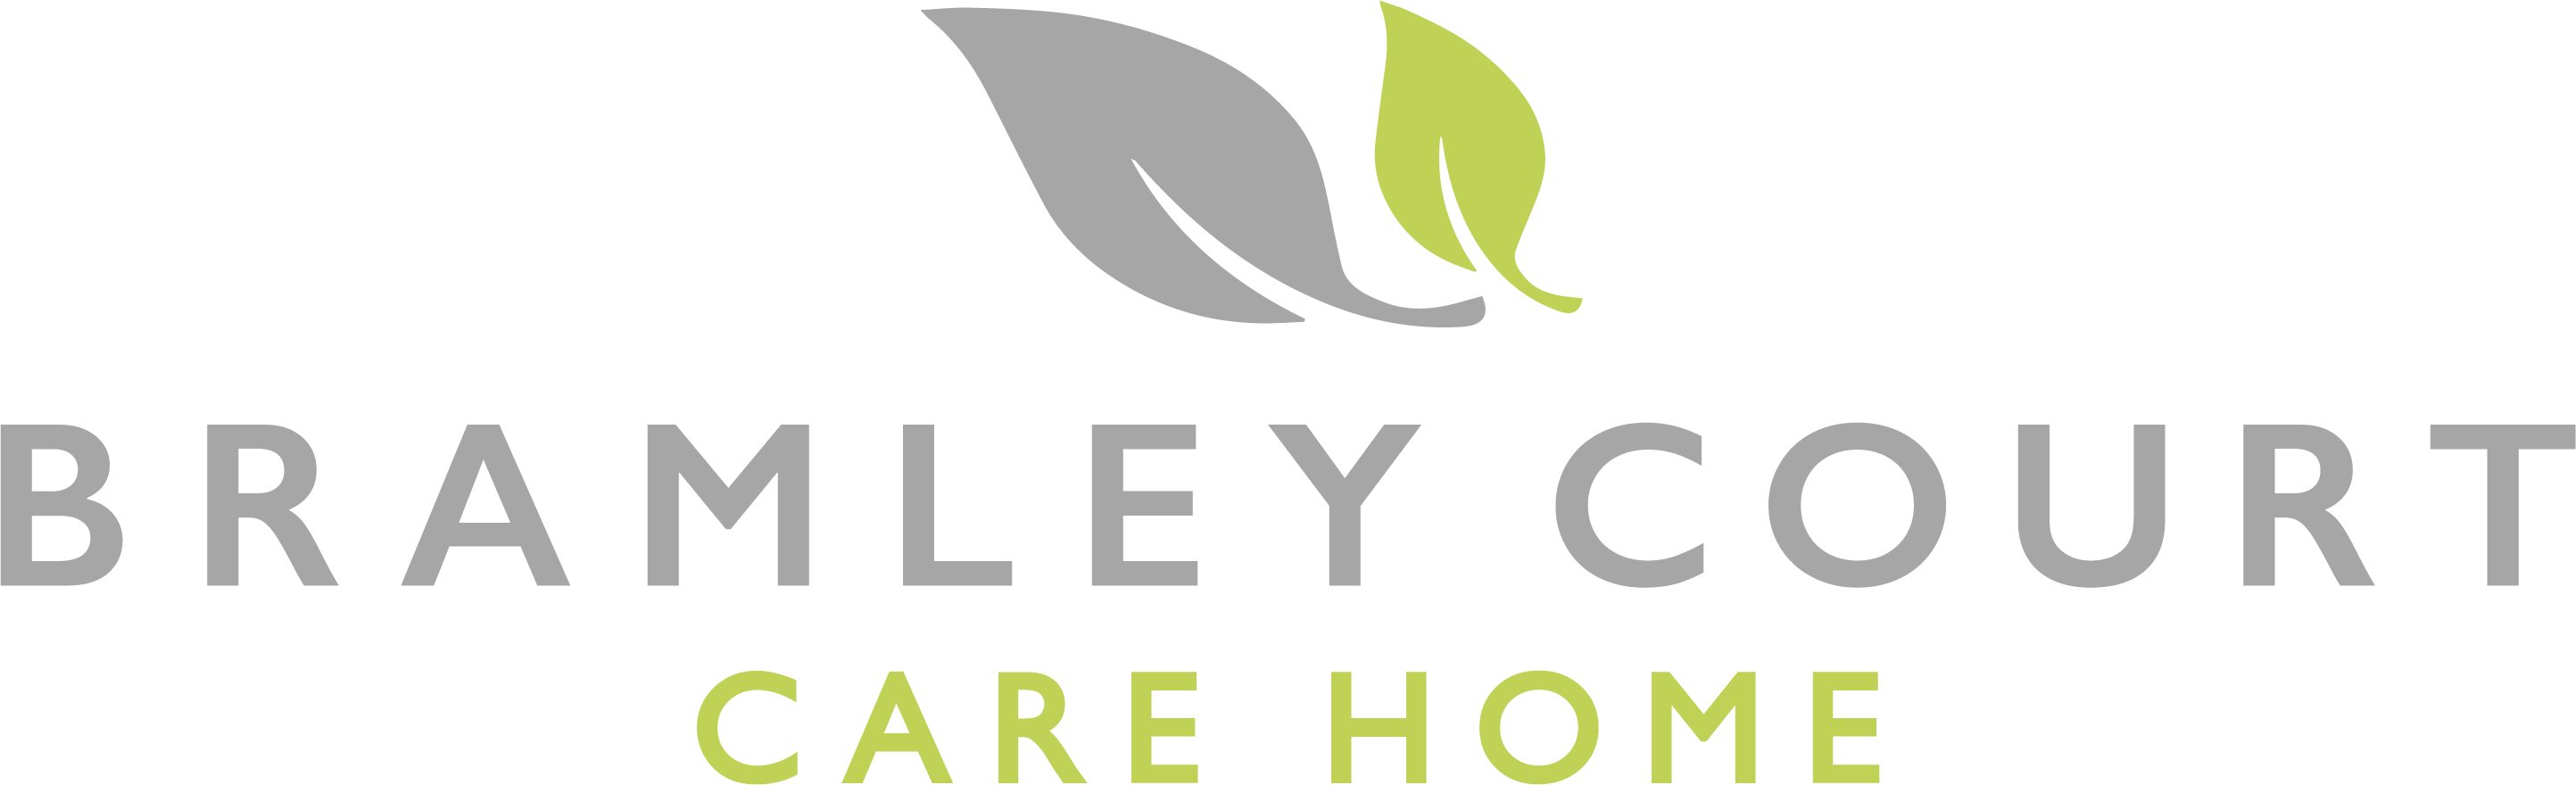 Bramley Court Care Home